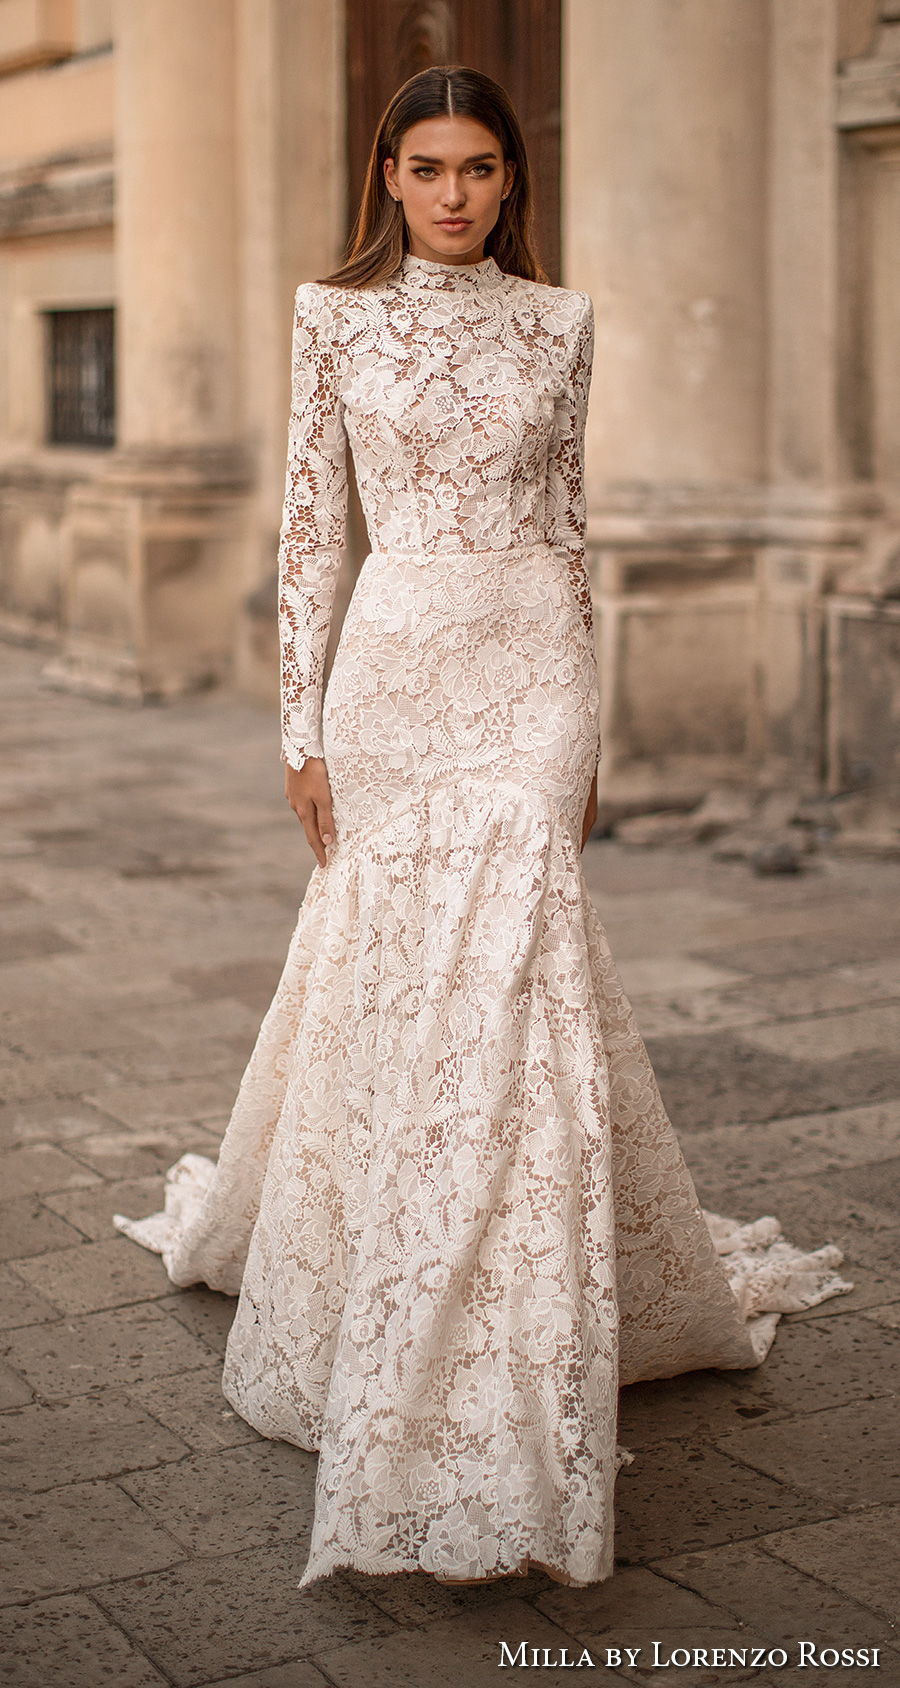 Milla By Lorenzo Rossi Wedding Dresses For Every Bride 2020 2021 Paris Bridal Collection Wedding Inspirasi